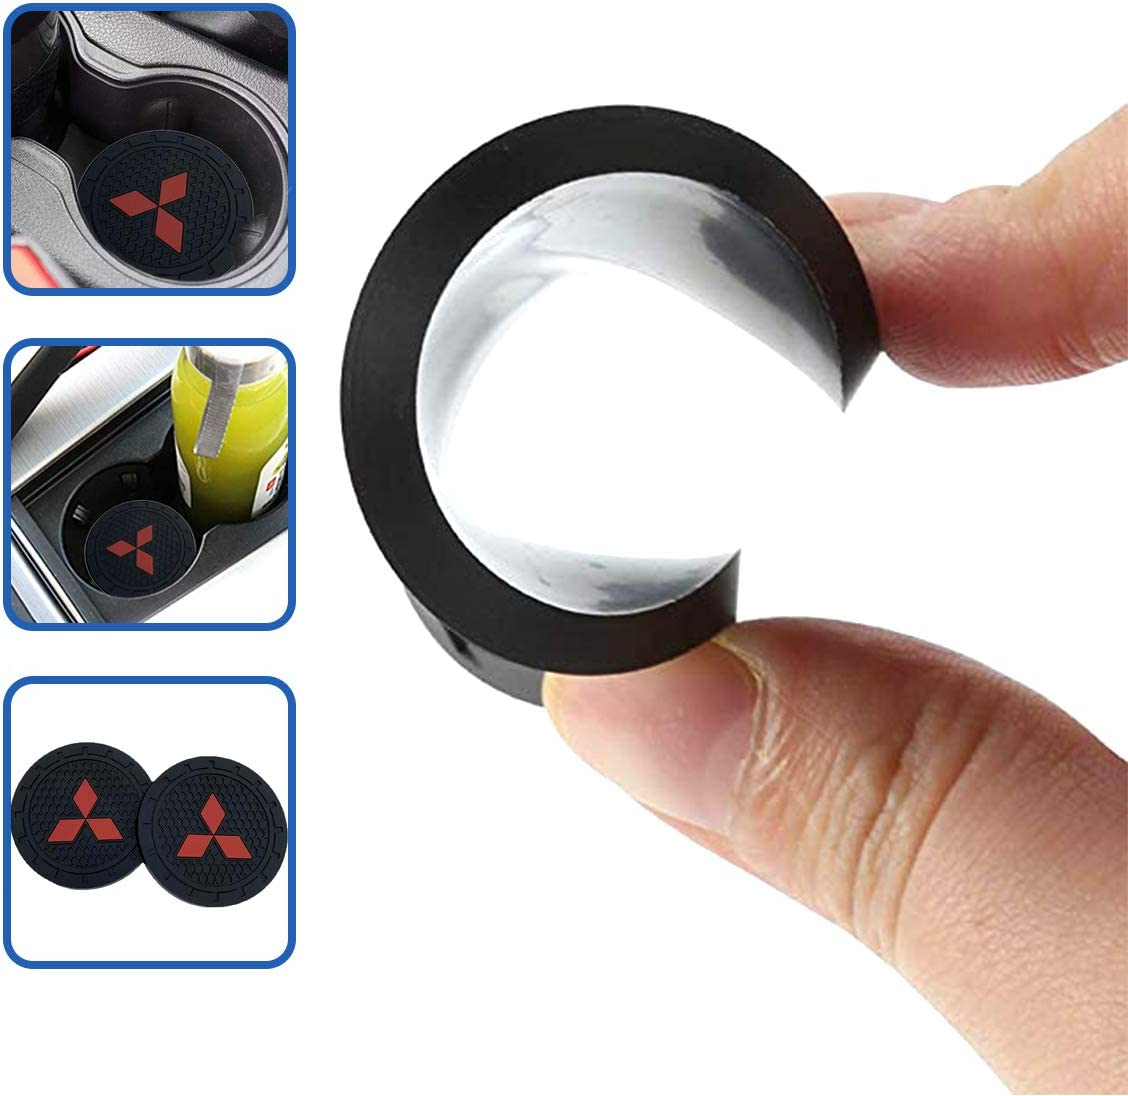 fit BMW Wall Stickz car Sales 2.75 Inch Diameter Oval Tough Car Logo Vehicle Travel Auto Cup Holder Insert Coaster Can 2 Pcs Pack